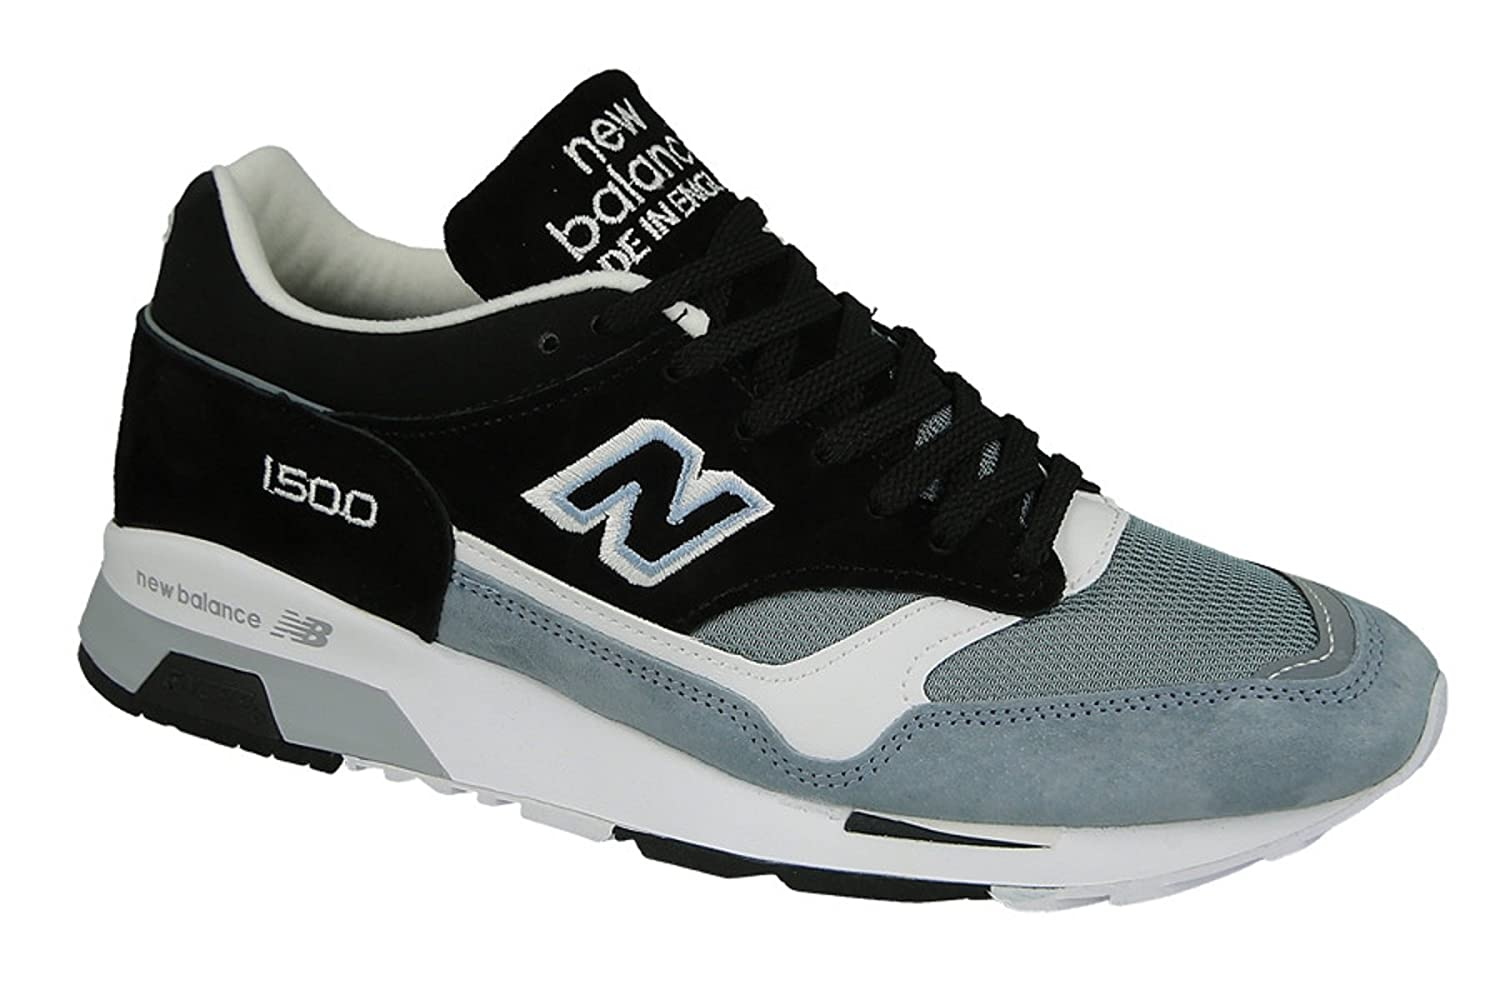 sale retailer e77d0 96689 New Balance M1500, PSK Black-Blue, 13: Amazon.co.uk: Shoes ...